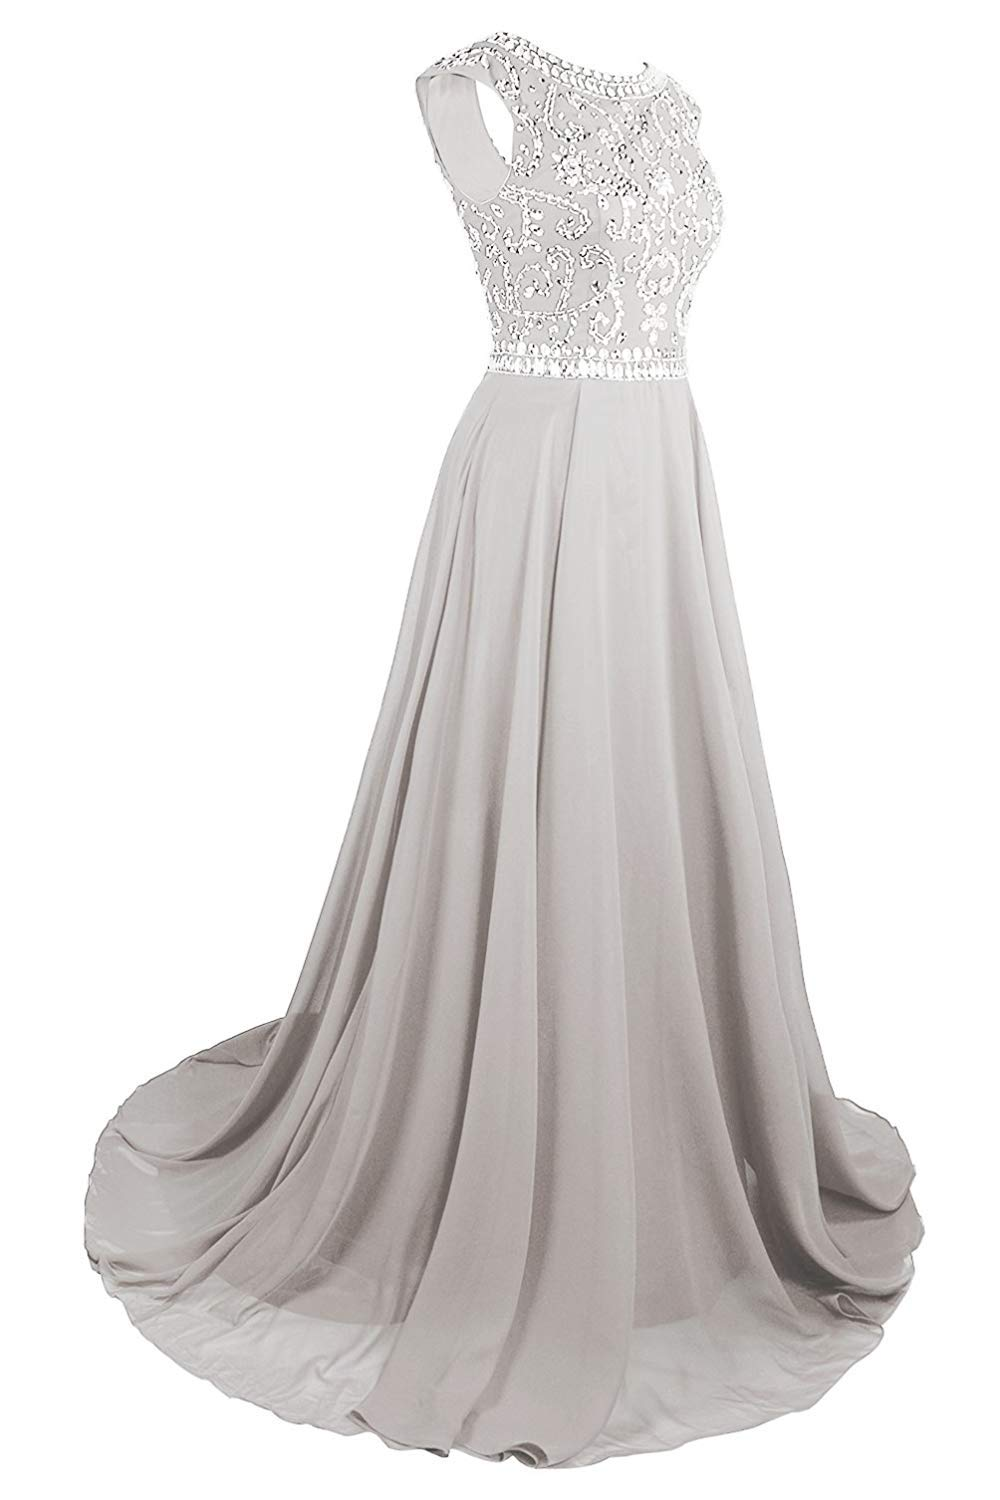 MsJune Long Prom Dresses Cap Sleeves Bridesmaid Wedding Guest Gowns Beaded Dress Silver 6